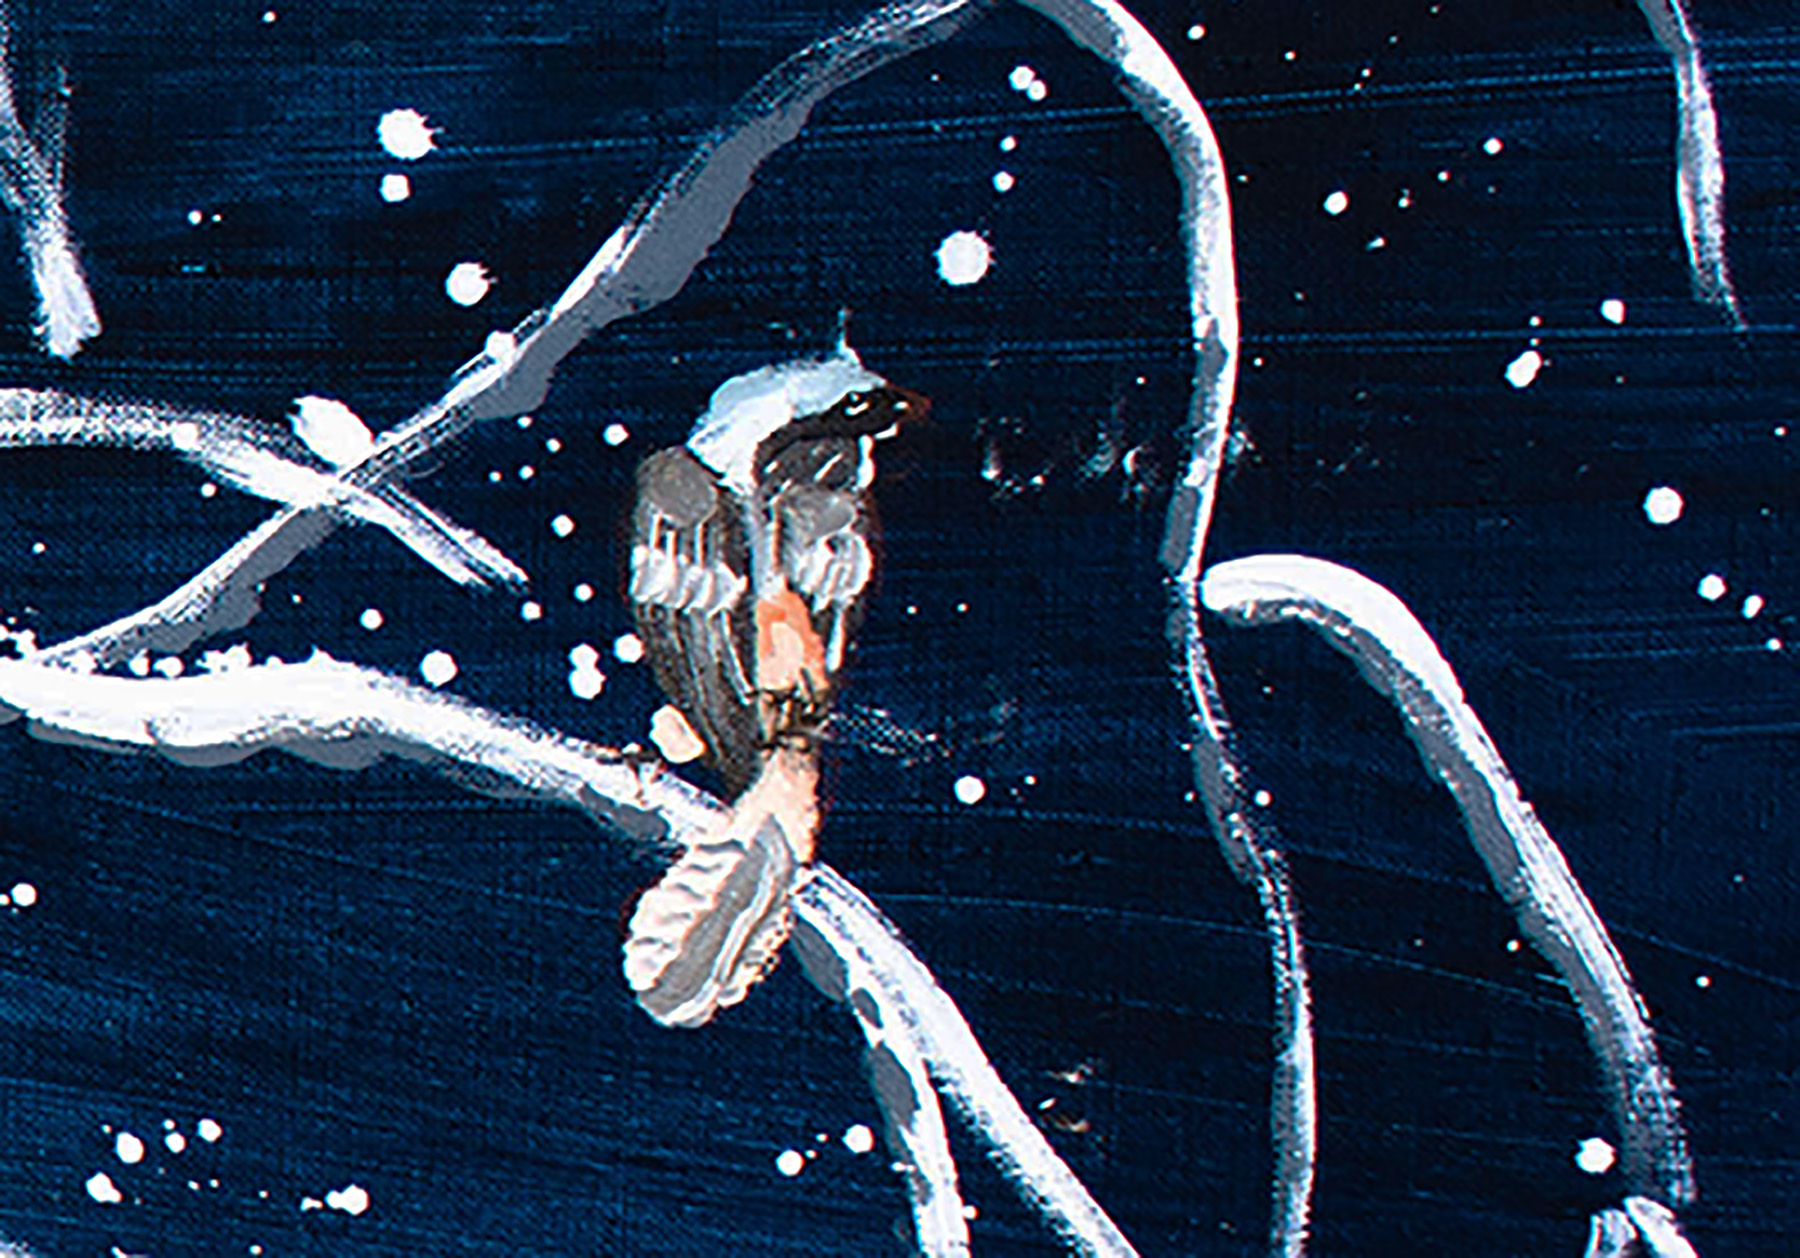 DETAIL of k's rendering of a bird on a snow covered branch